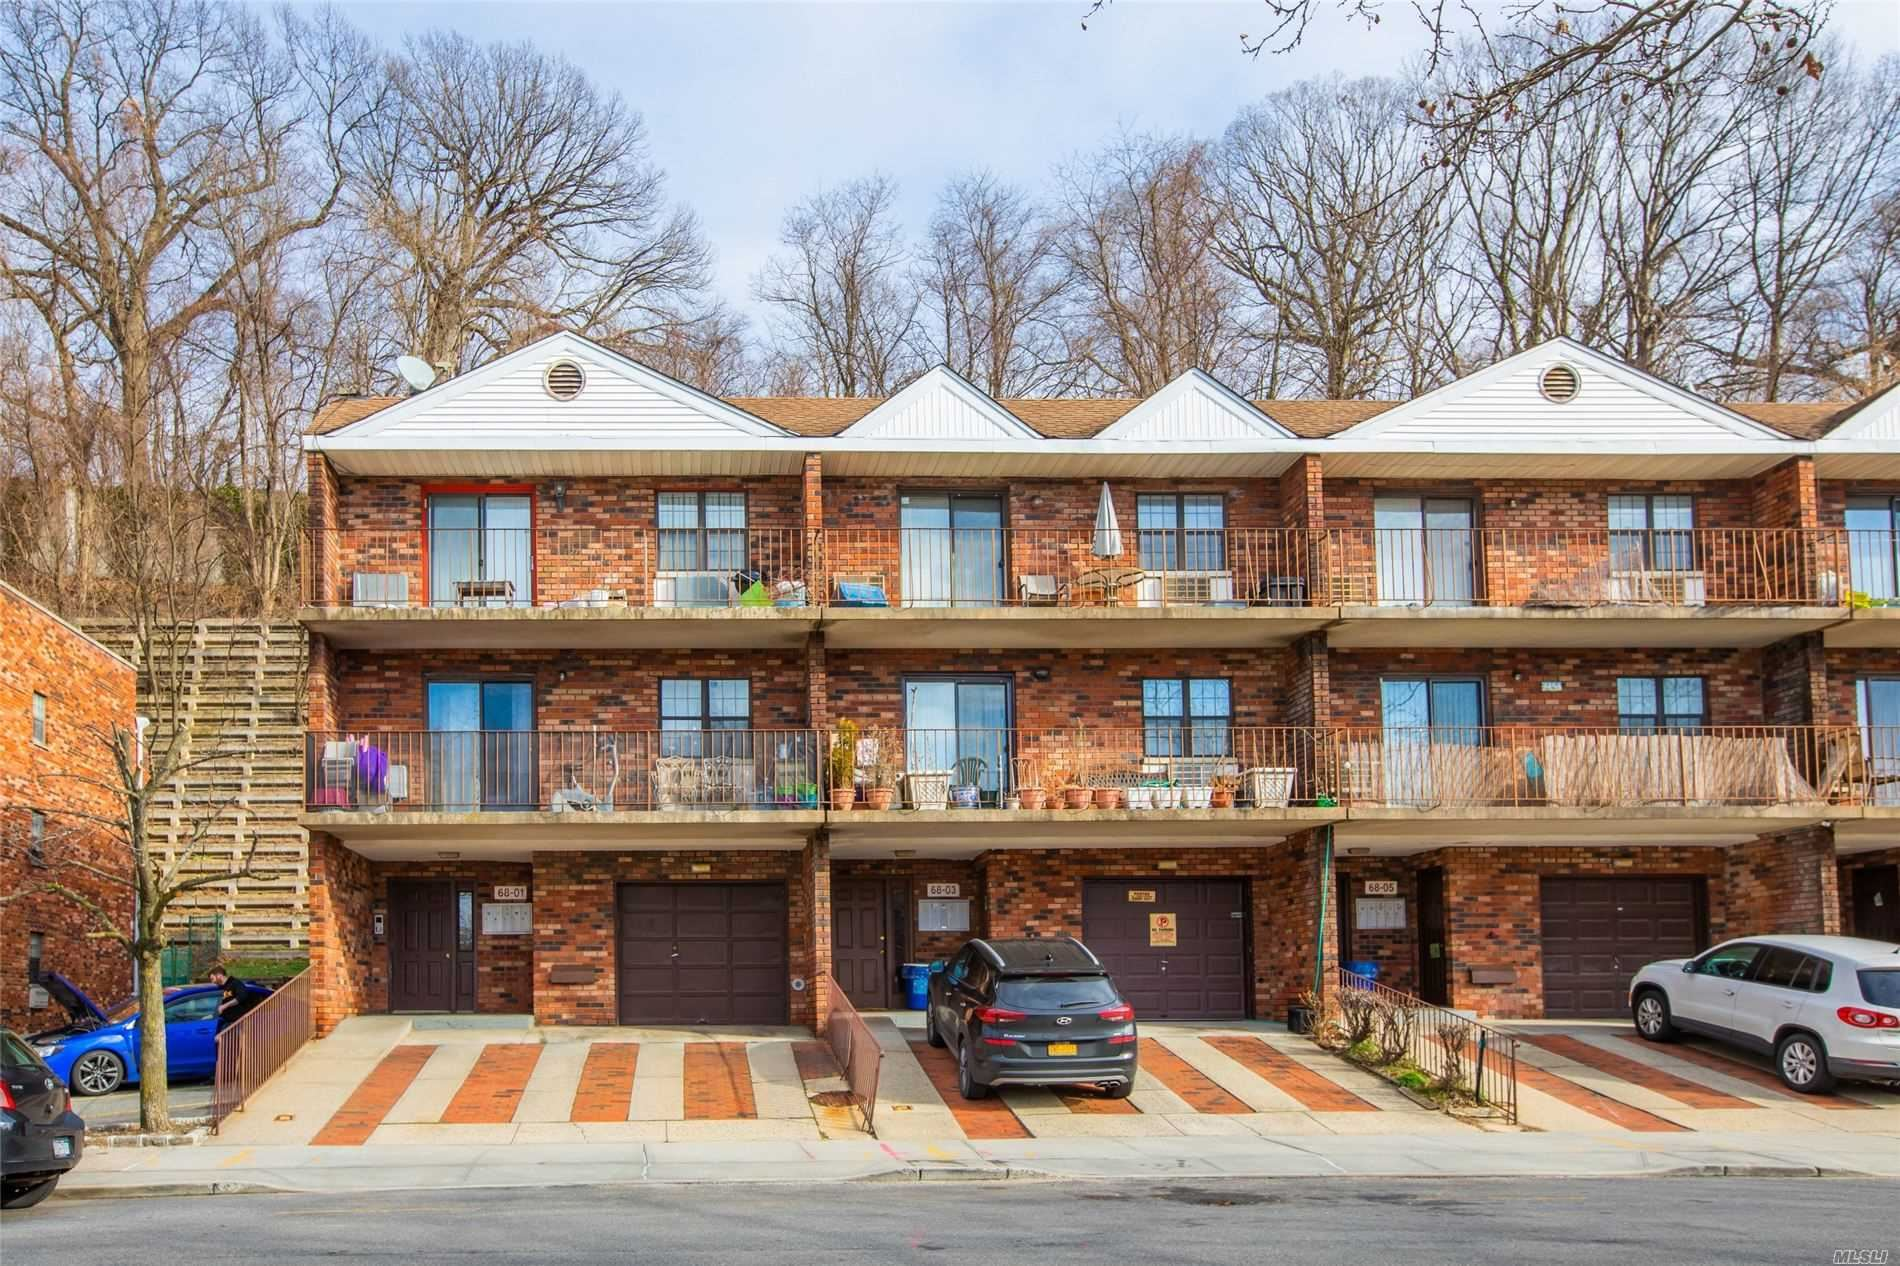 68-01 242 Street #29A, Douglaston, NY 11362 - MLS#: 3191409